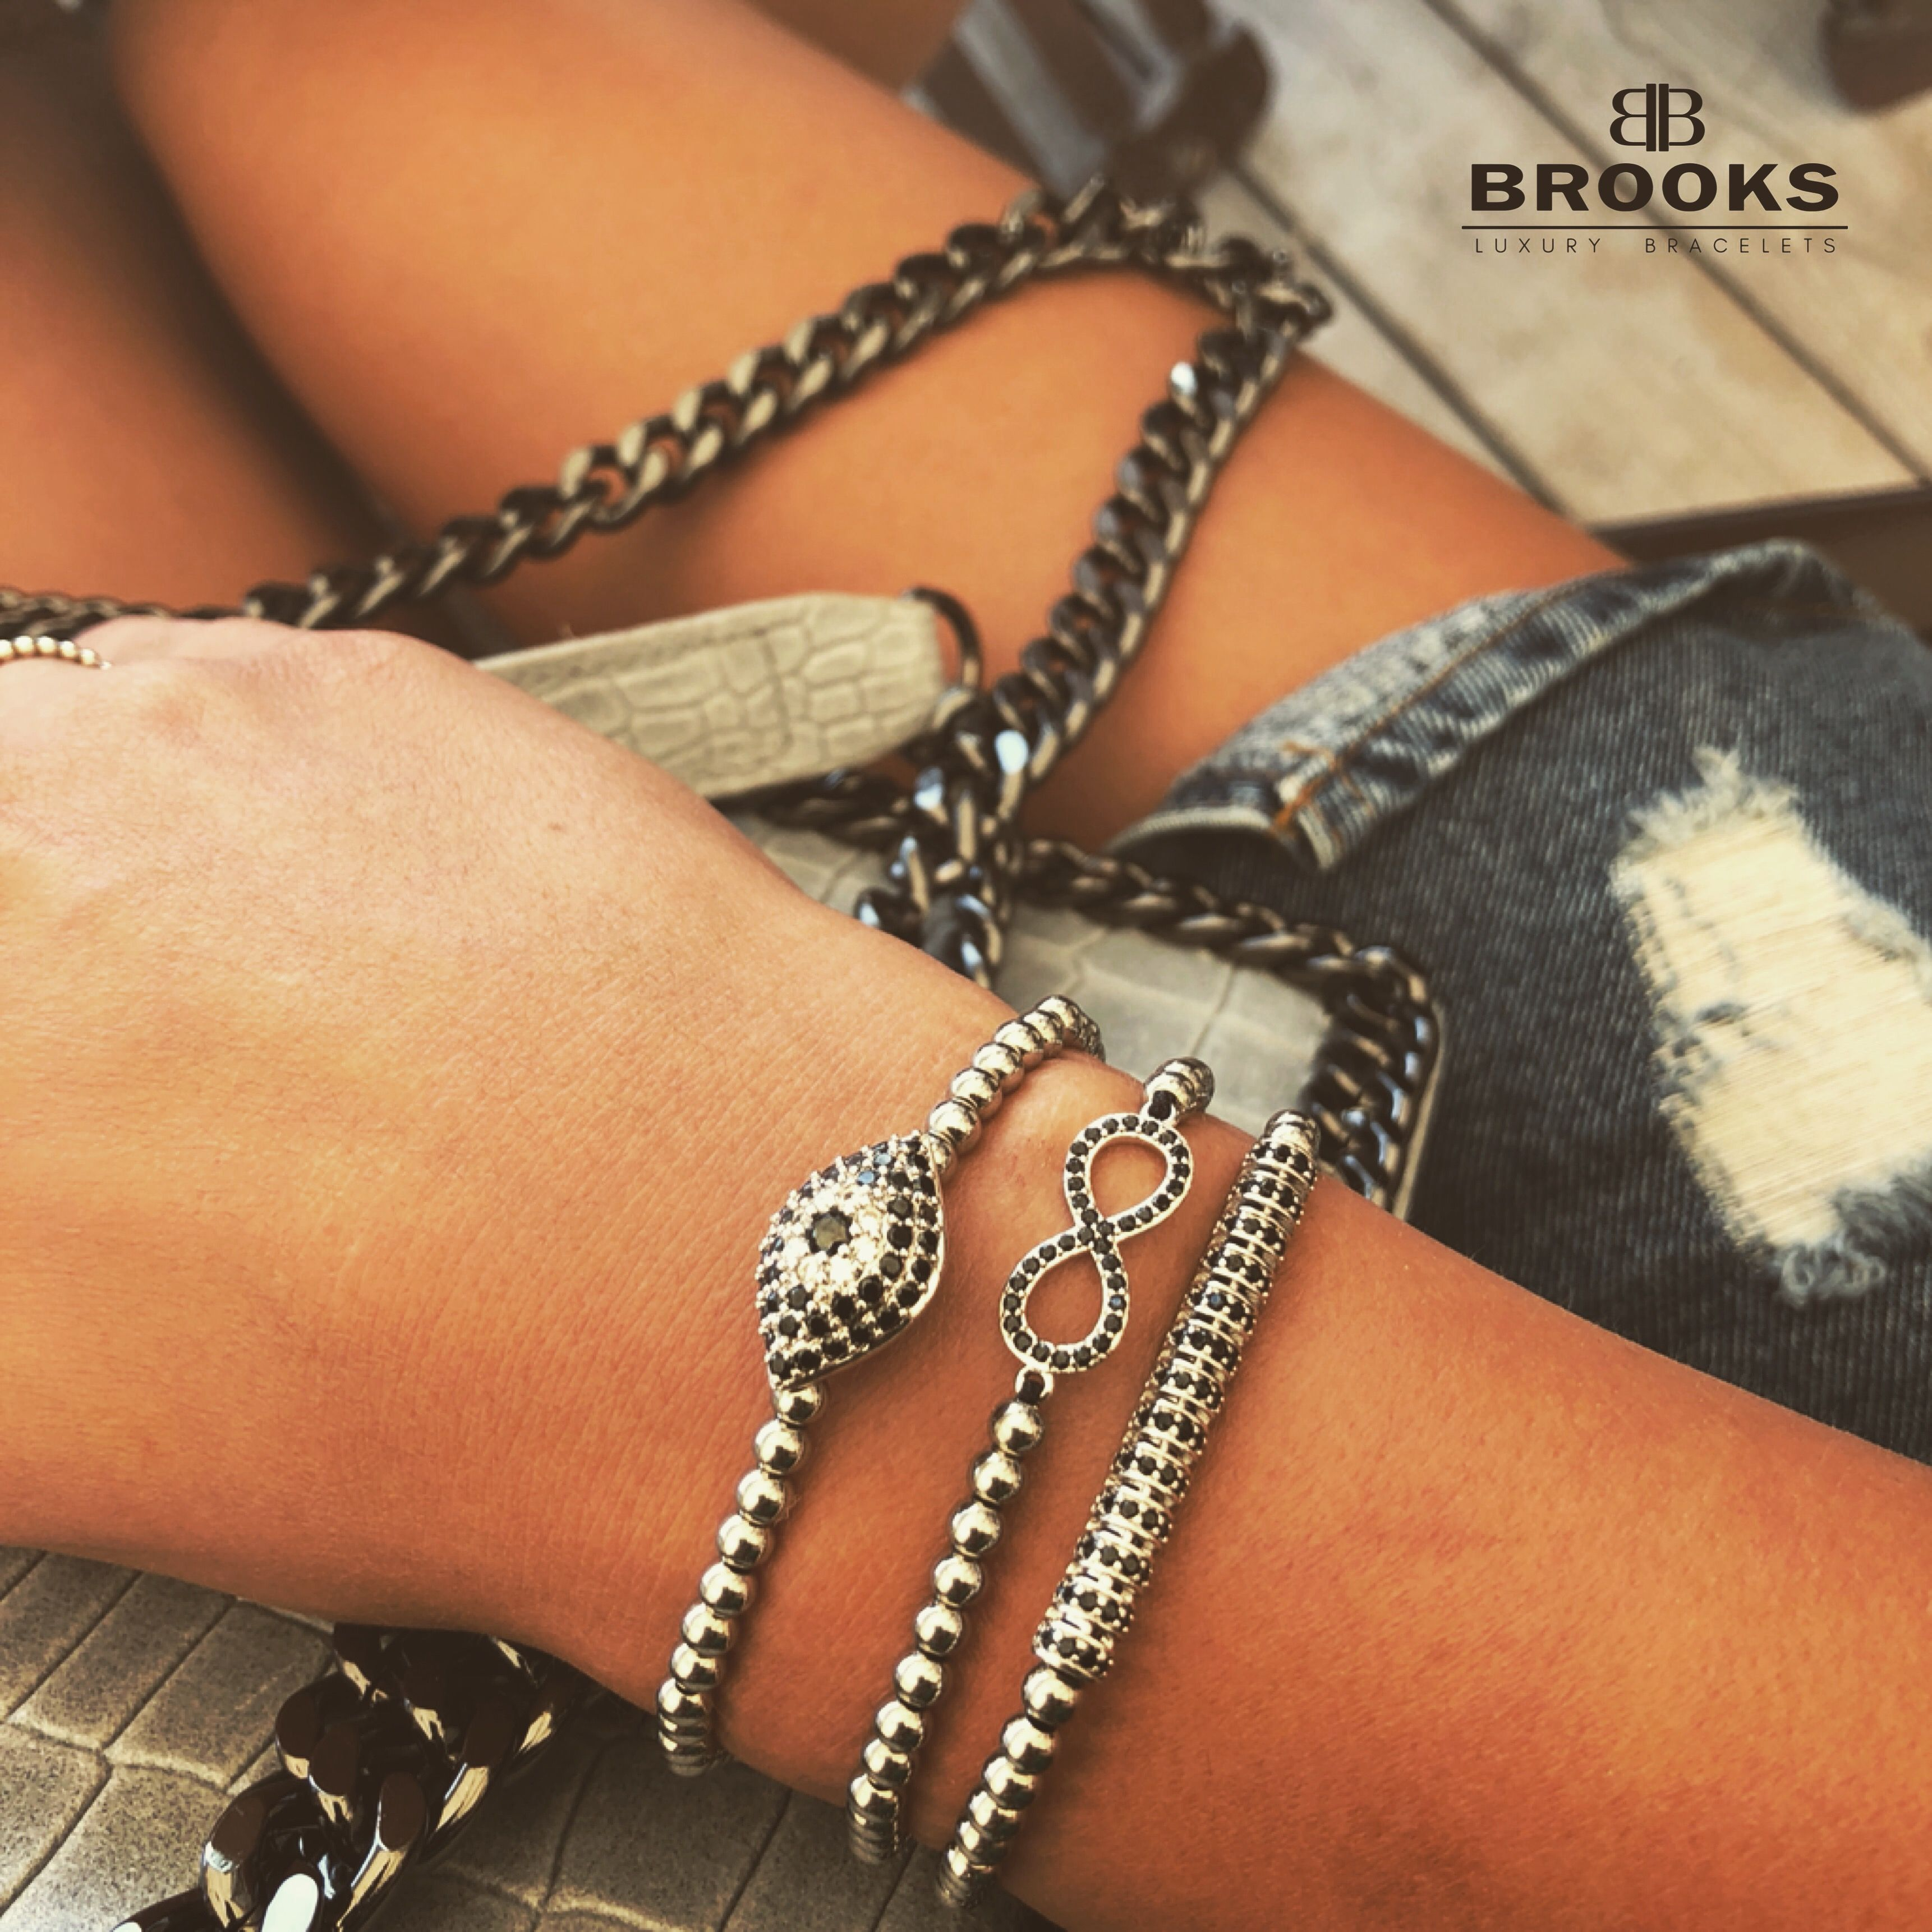 Brooks Luxury Set Silver Infinity Bracelets